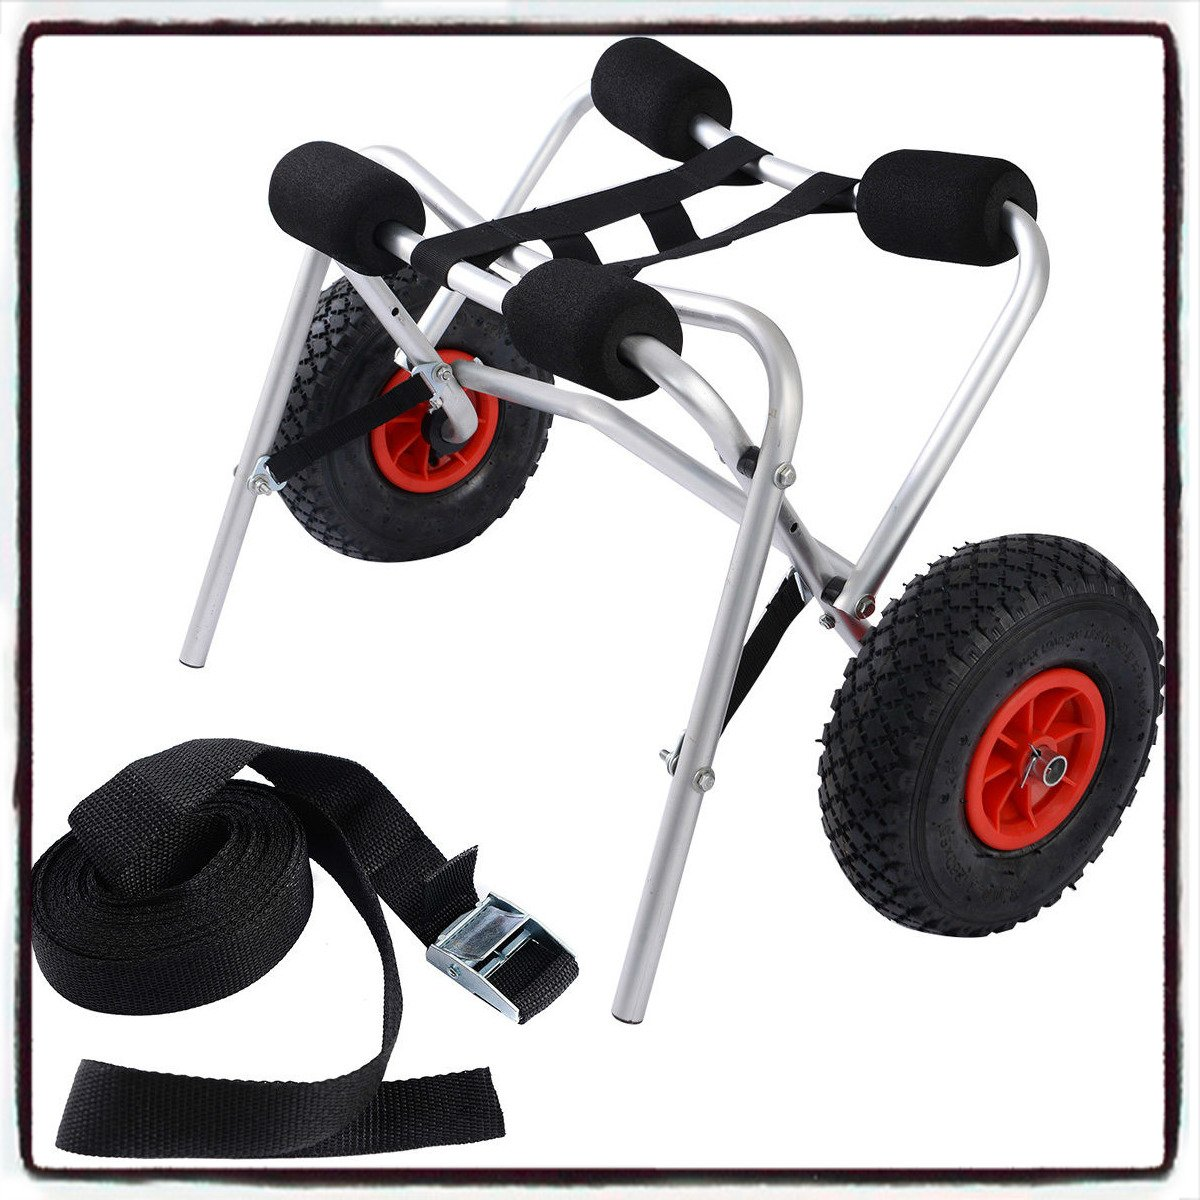 Aluminum Transport Kayak Boat Canoe Gear Dolly Cart Trailer Carrier Trolley Wheels - House Deals